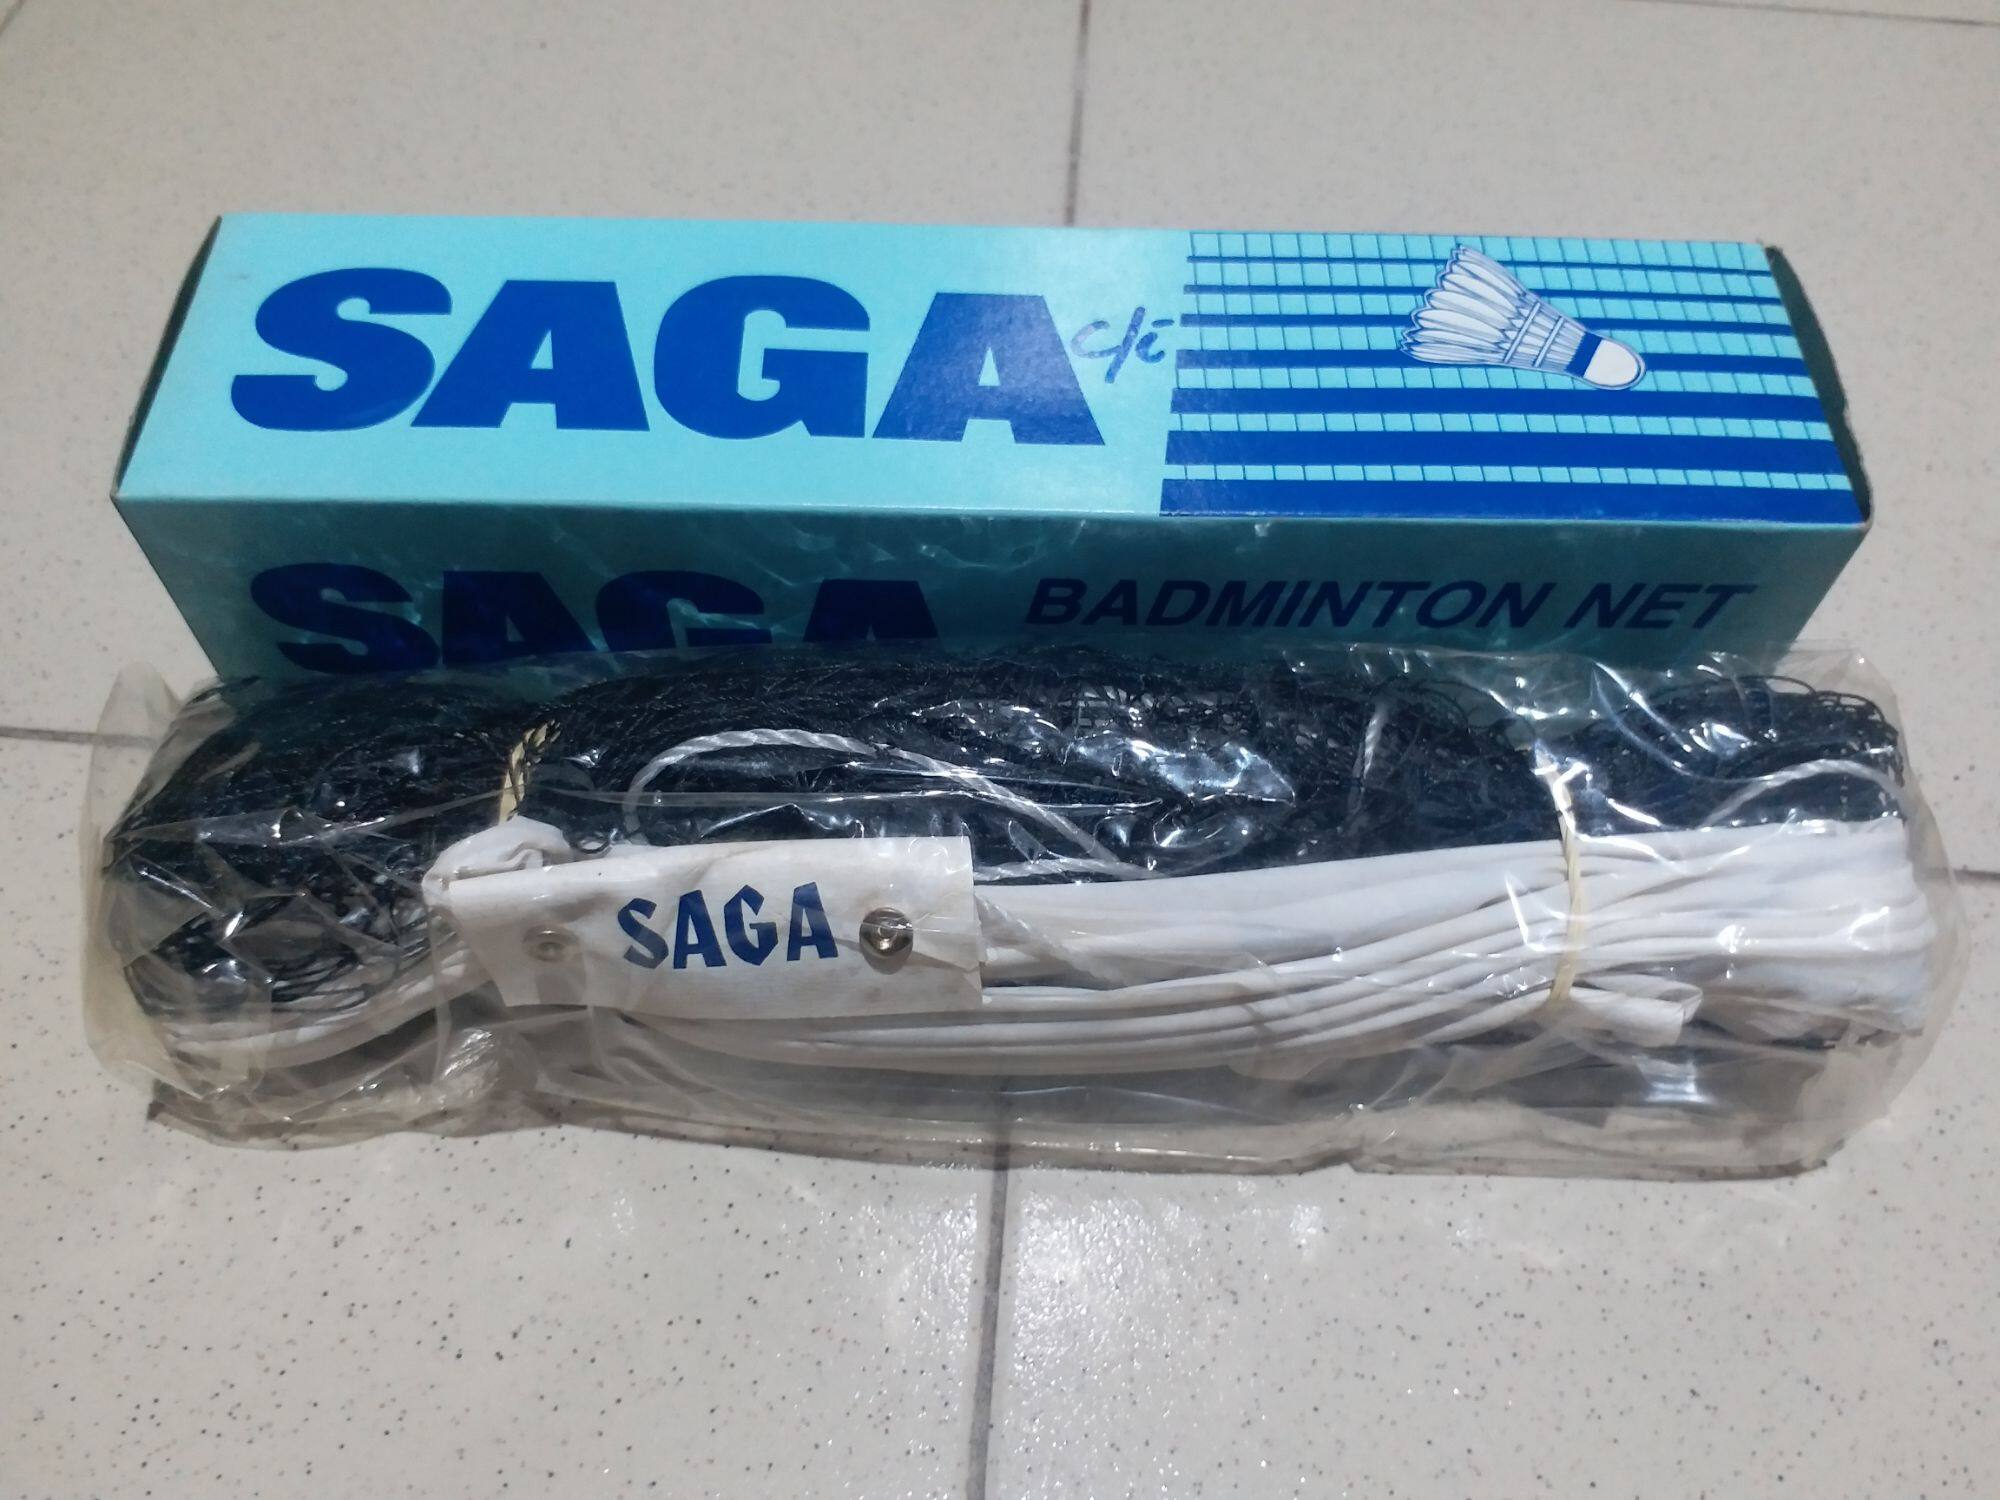 SAGA BADMINTON NET  x 1pc